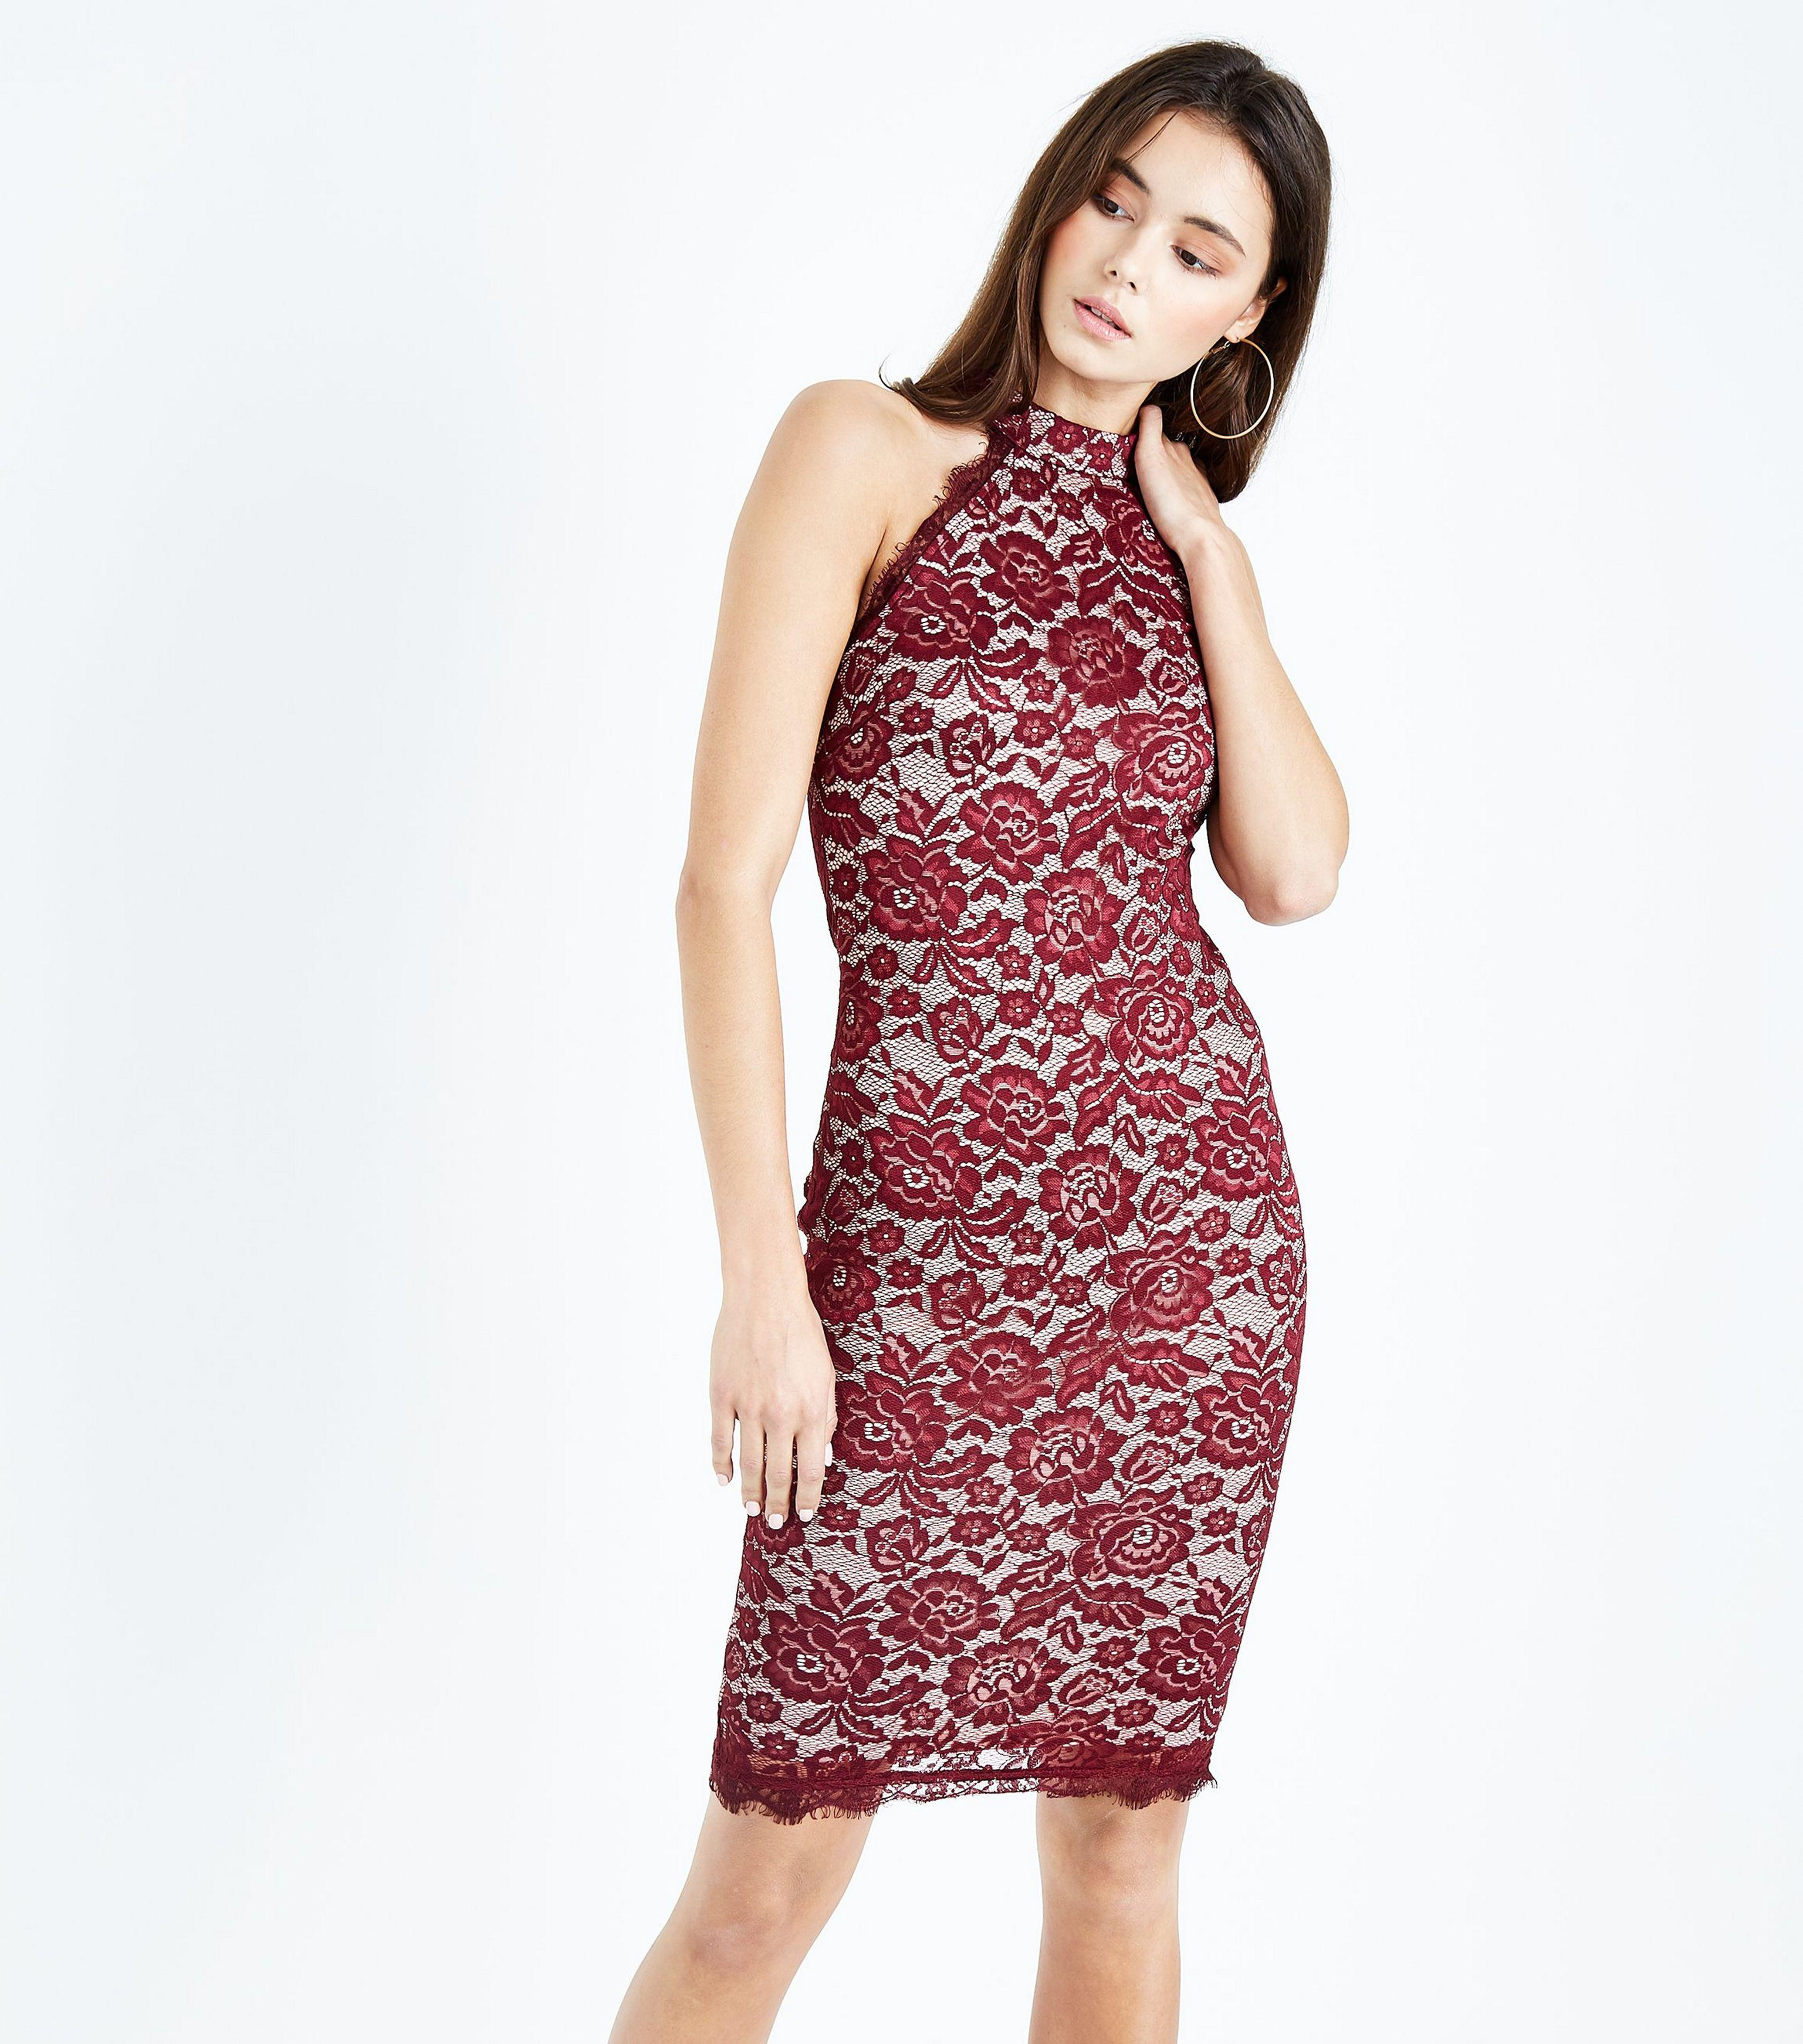 15542ec8347f AX Paris Red Lace High Neck Bodycon Dress in Red - Lyst